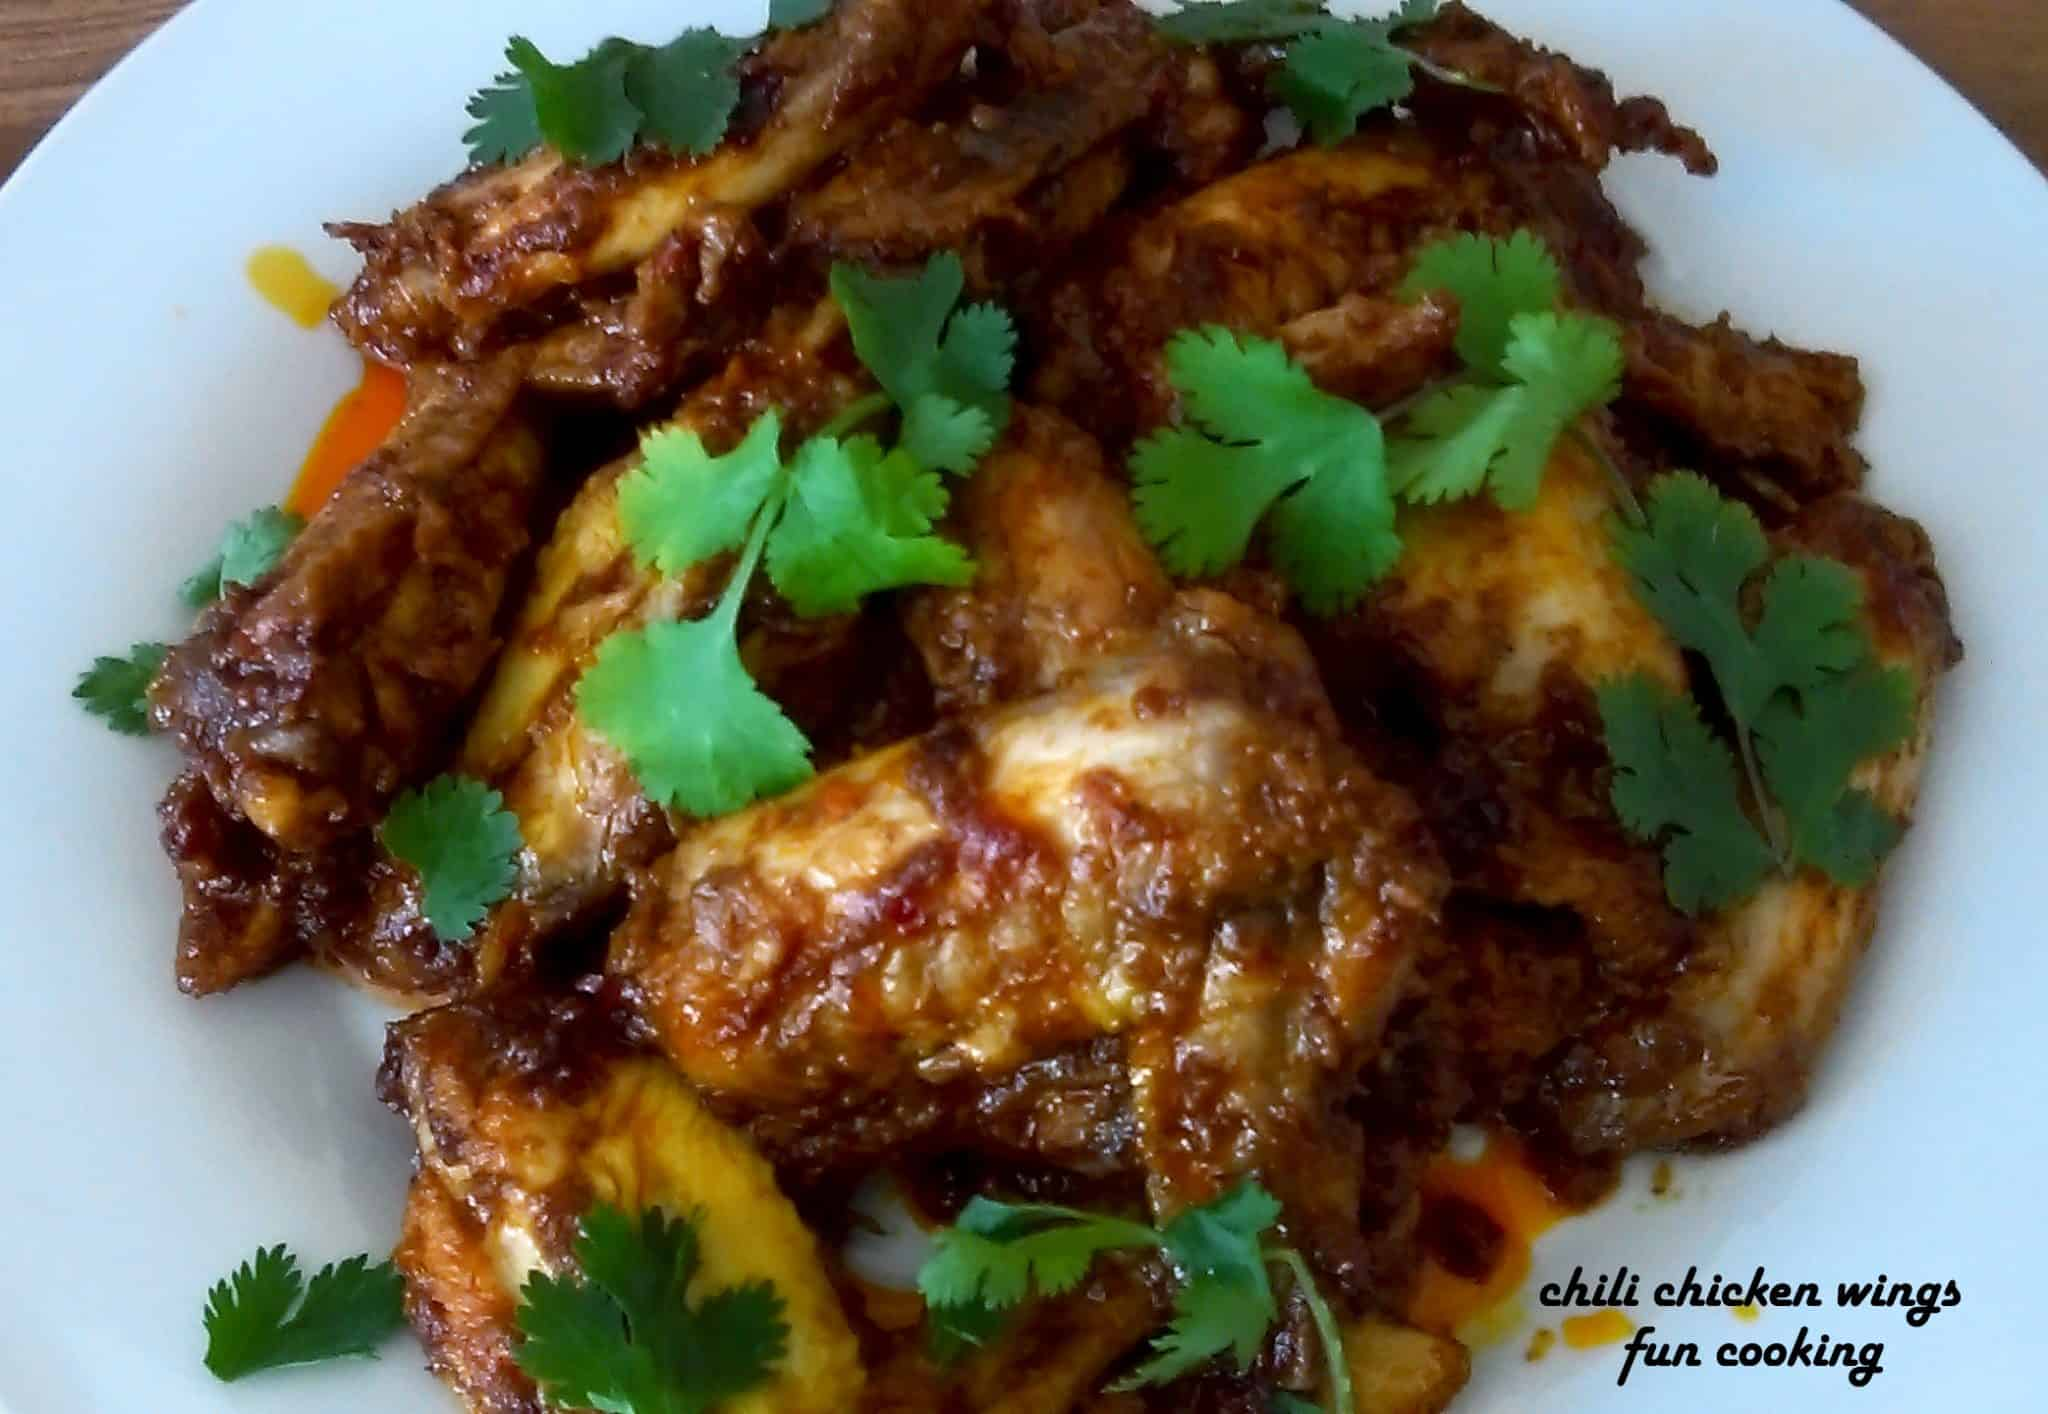 Chili Chicken Wings - Fun Cooking